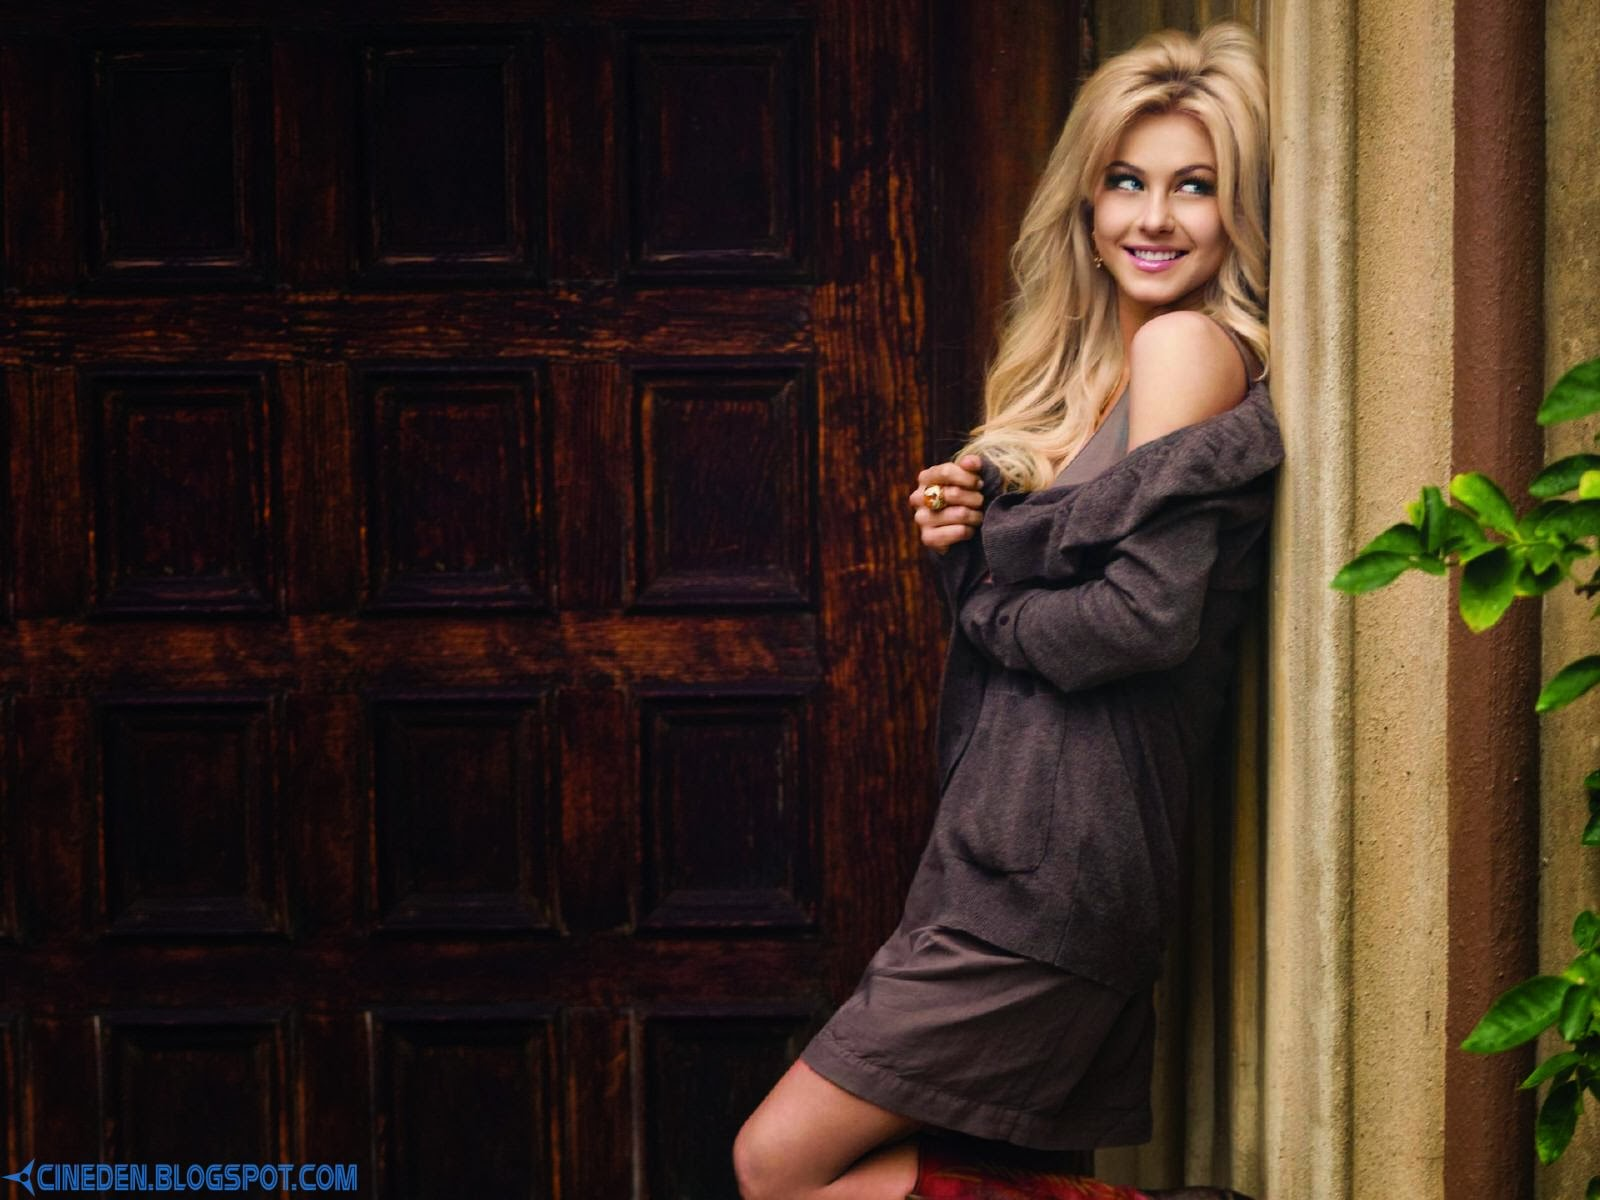 Julianne Hough looking for new house - CineDen